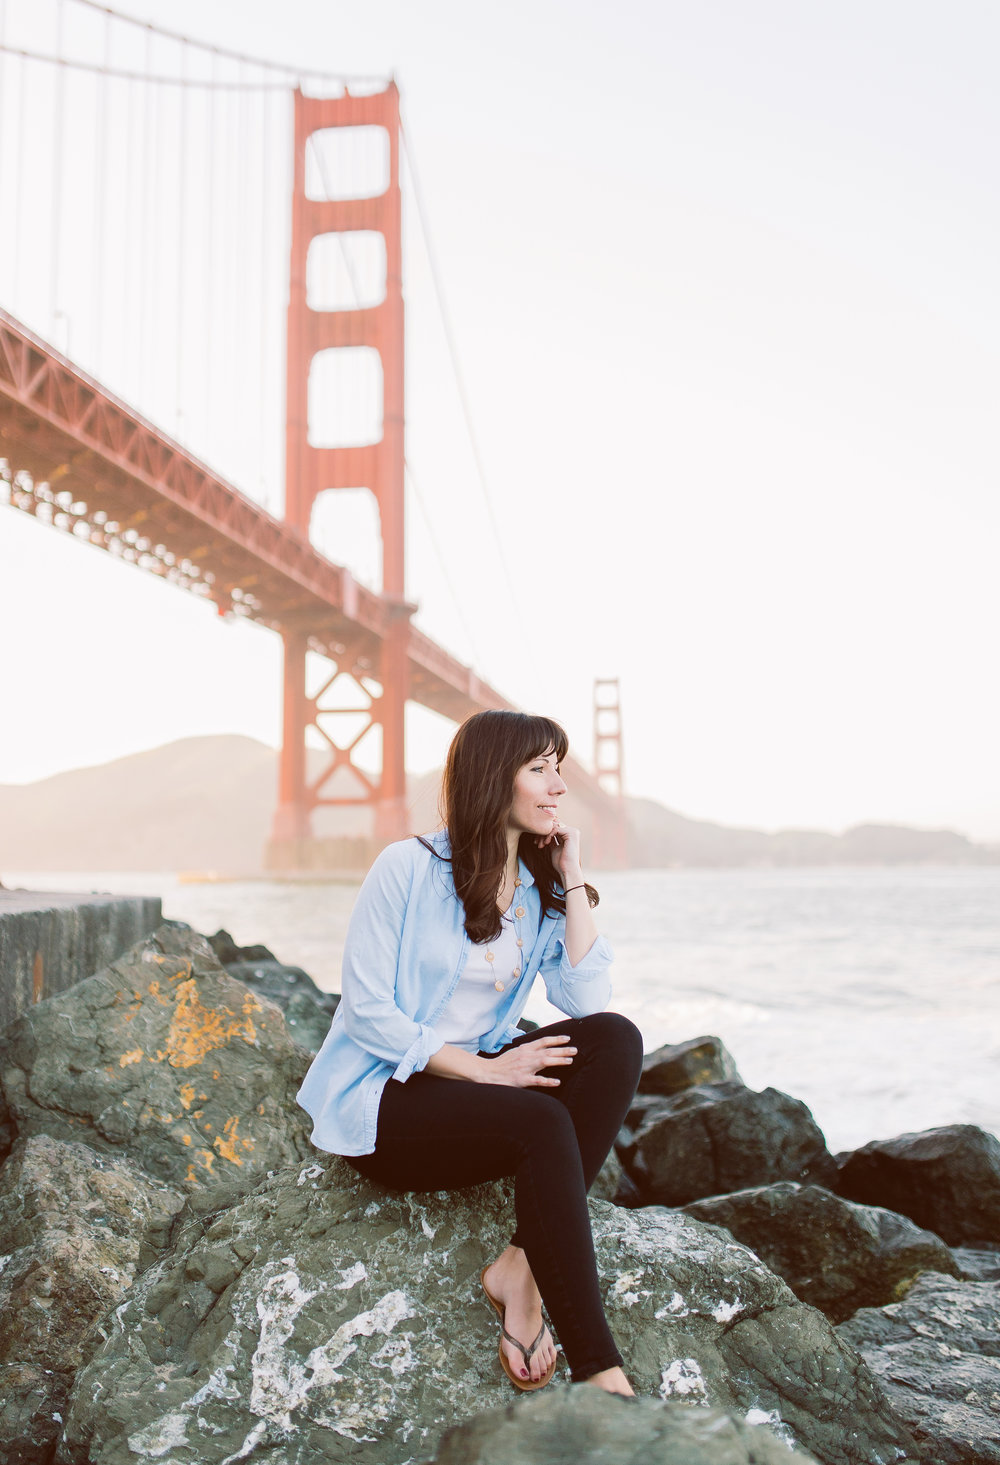 Best Instagrammable Spot at Golden Gate Bridge